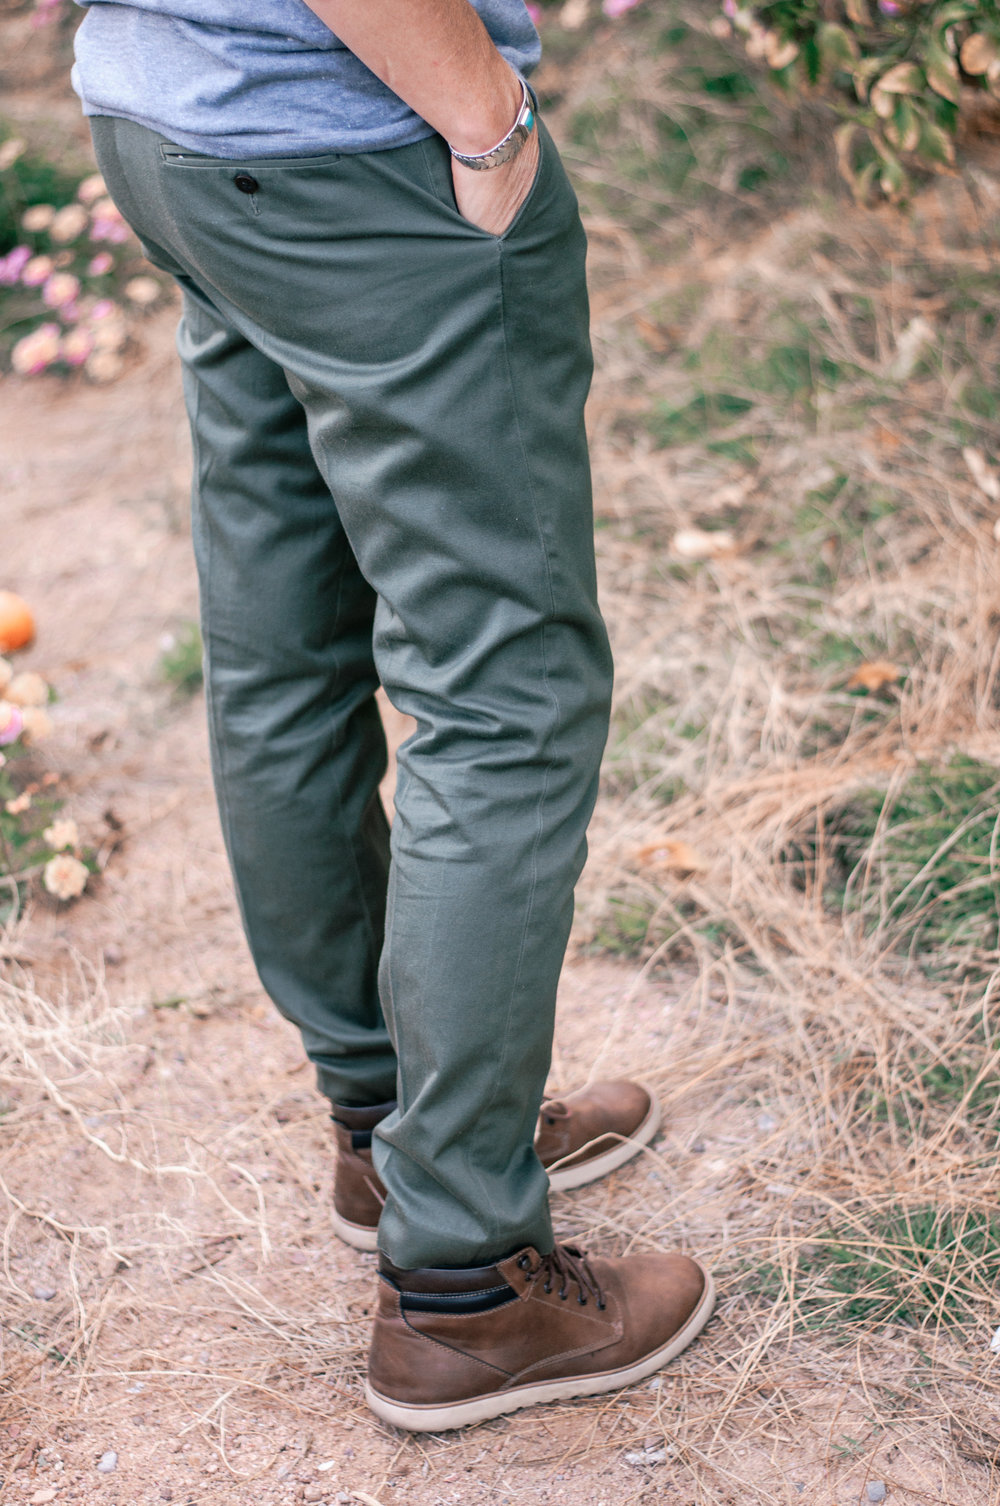 J.Crew Ludlow Stretch Chinos in Green and Goodfellow Boots